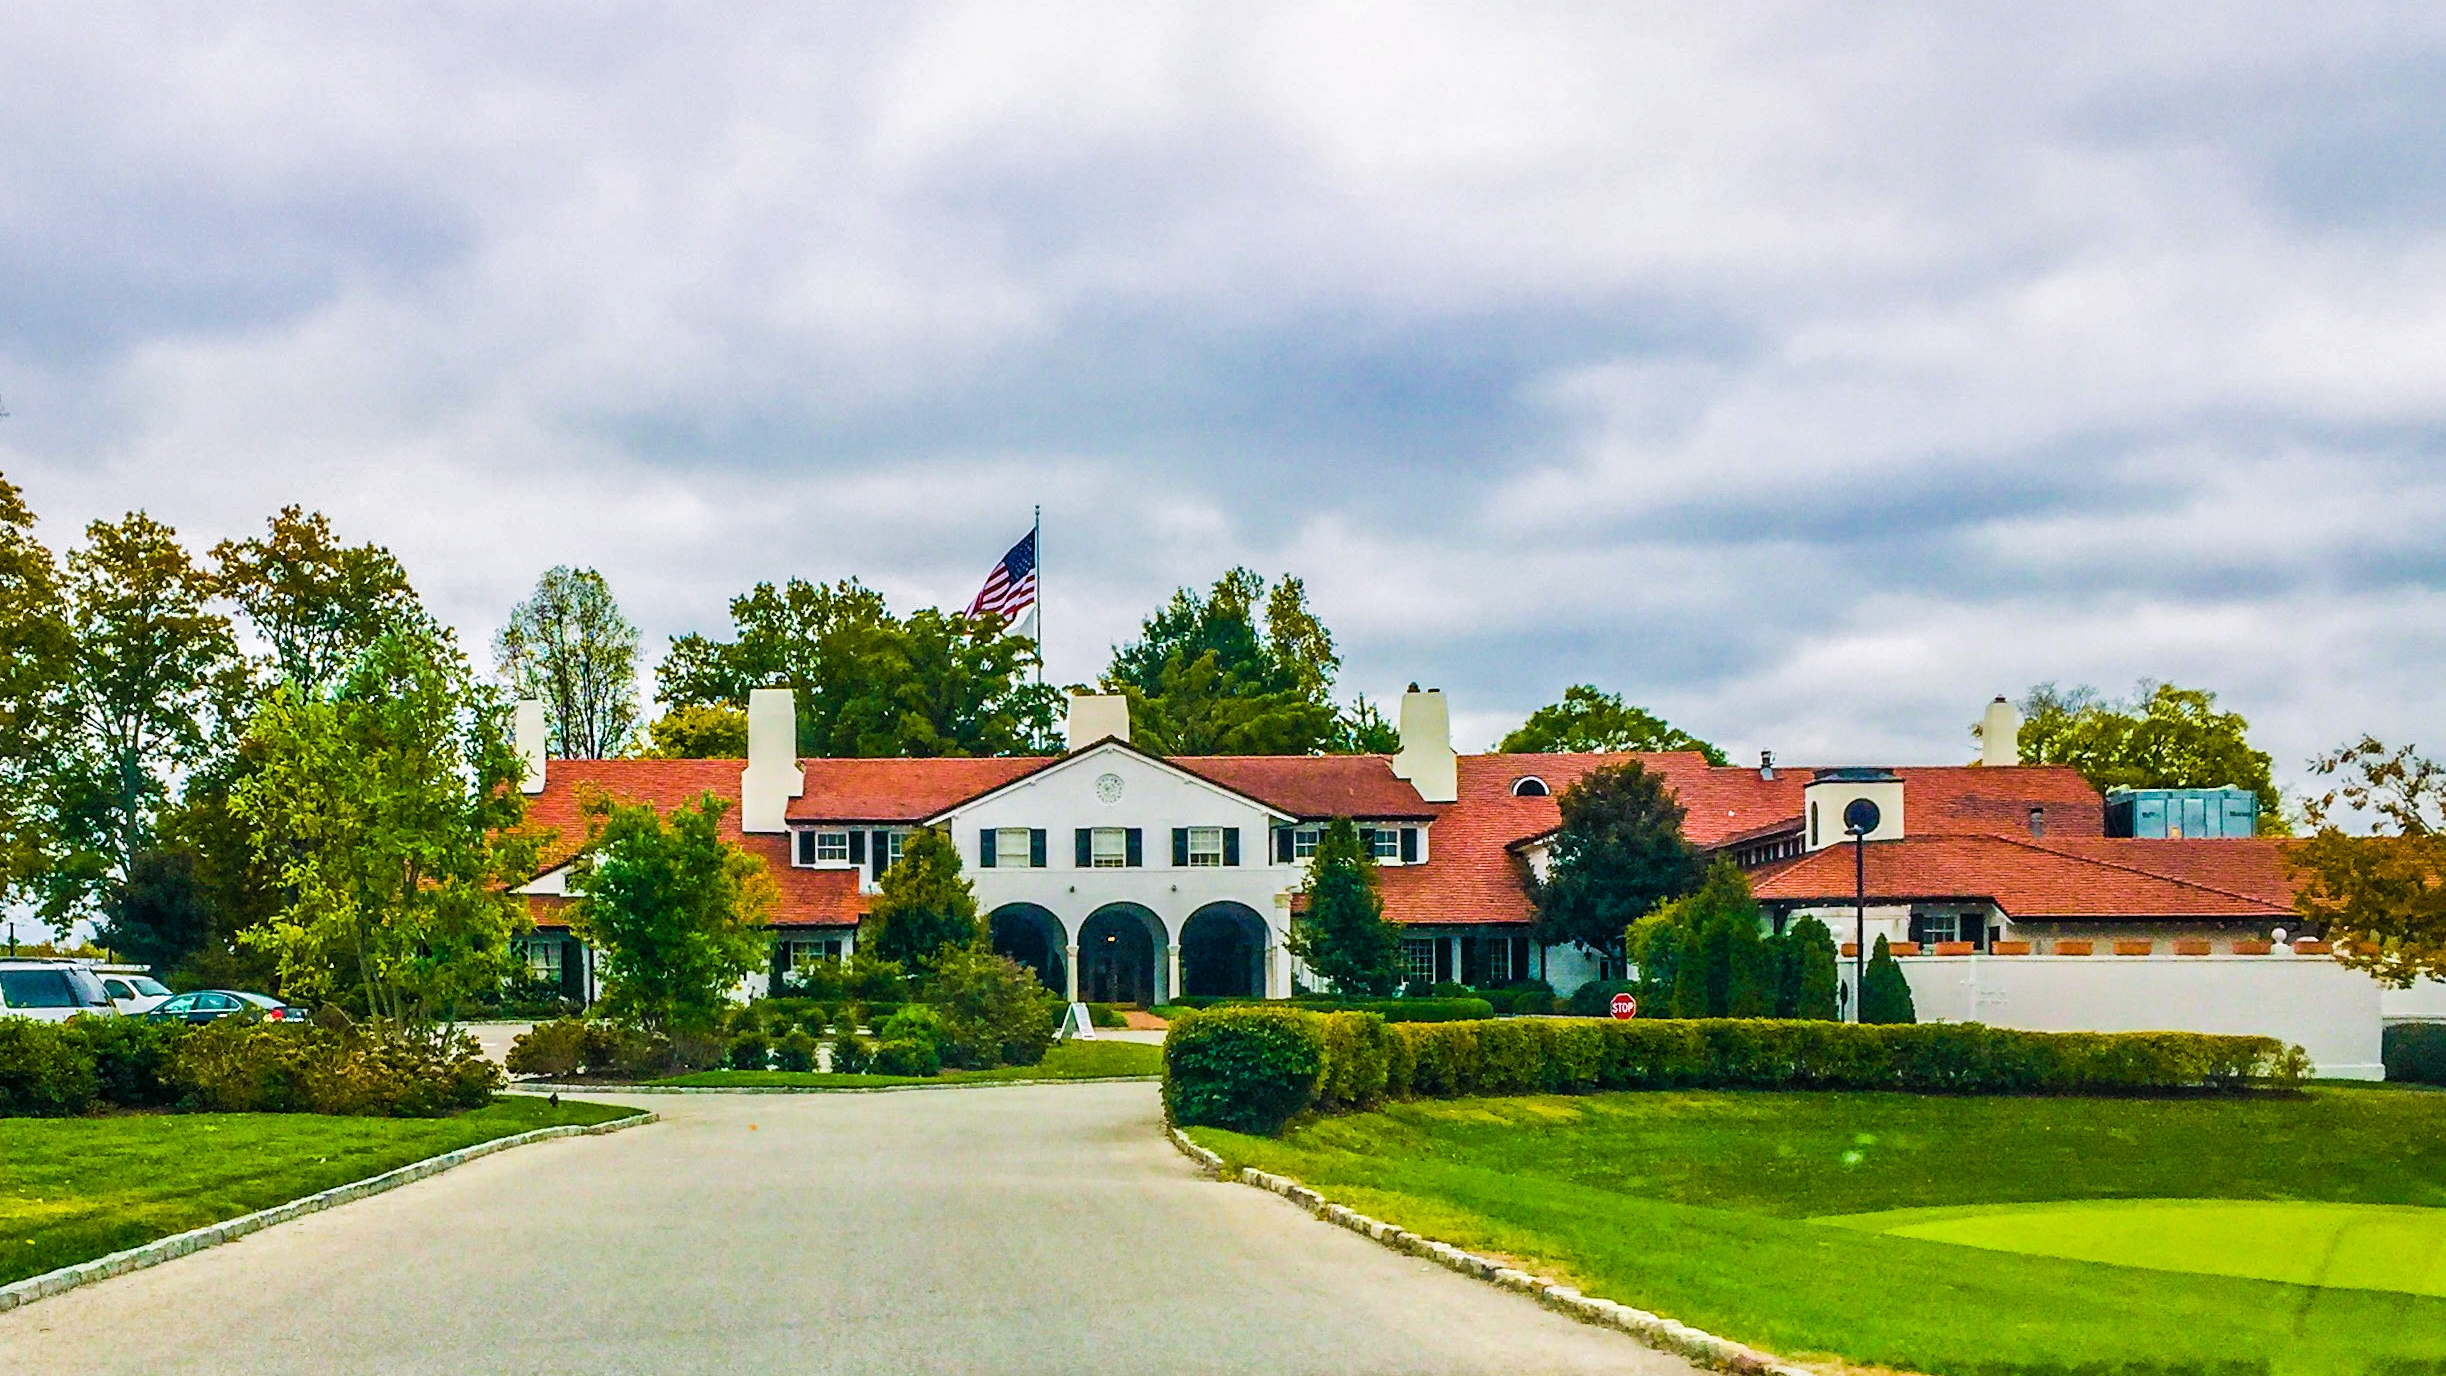 ST. LOUIS COUNTRY CLUB - ST. LOUIS, MO - DIRECTOR OF RACQUETS   A storied club with a fine history of high athletic performance,  St Louis Country Club  has a great tradition in tennis and golf with Dwight Davis (founder of the Davis Cup) being a founding member of the club, and the club having been host to one US Open and two US Amateur Golf tournaments.  After the very successful 32-year tenure of the club's previous professional, the General Manager engaged McMahon to support the Search Committee through their selection process. The engagement included consultation by McMahon with a broad cross-section of club stakeholders, which surfaced a variety of viewpoints, priorities and expectations before the Position Profile was finalized. The club considered the merits of hiring a Tennis Director or Director of Racquets and McMahon provided counsel on specific responsibilities and a competitive compensation package for the new professional.